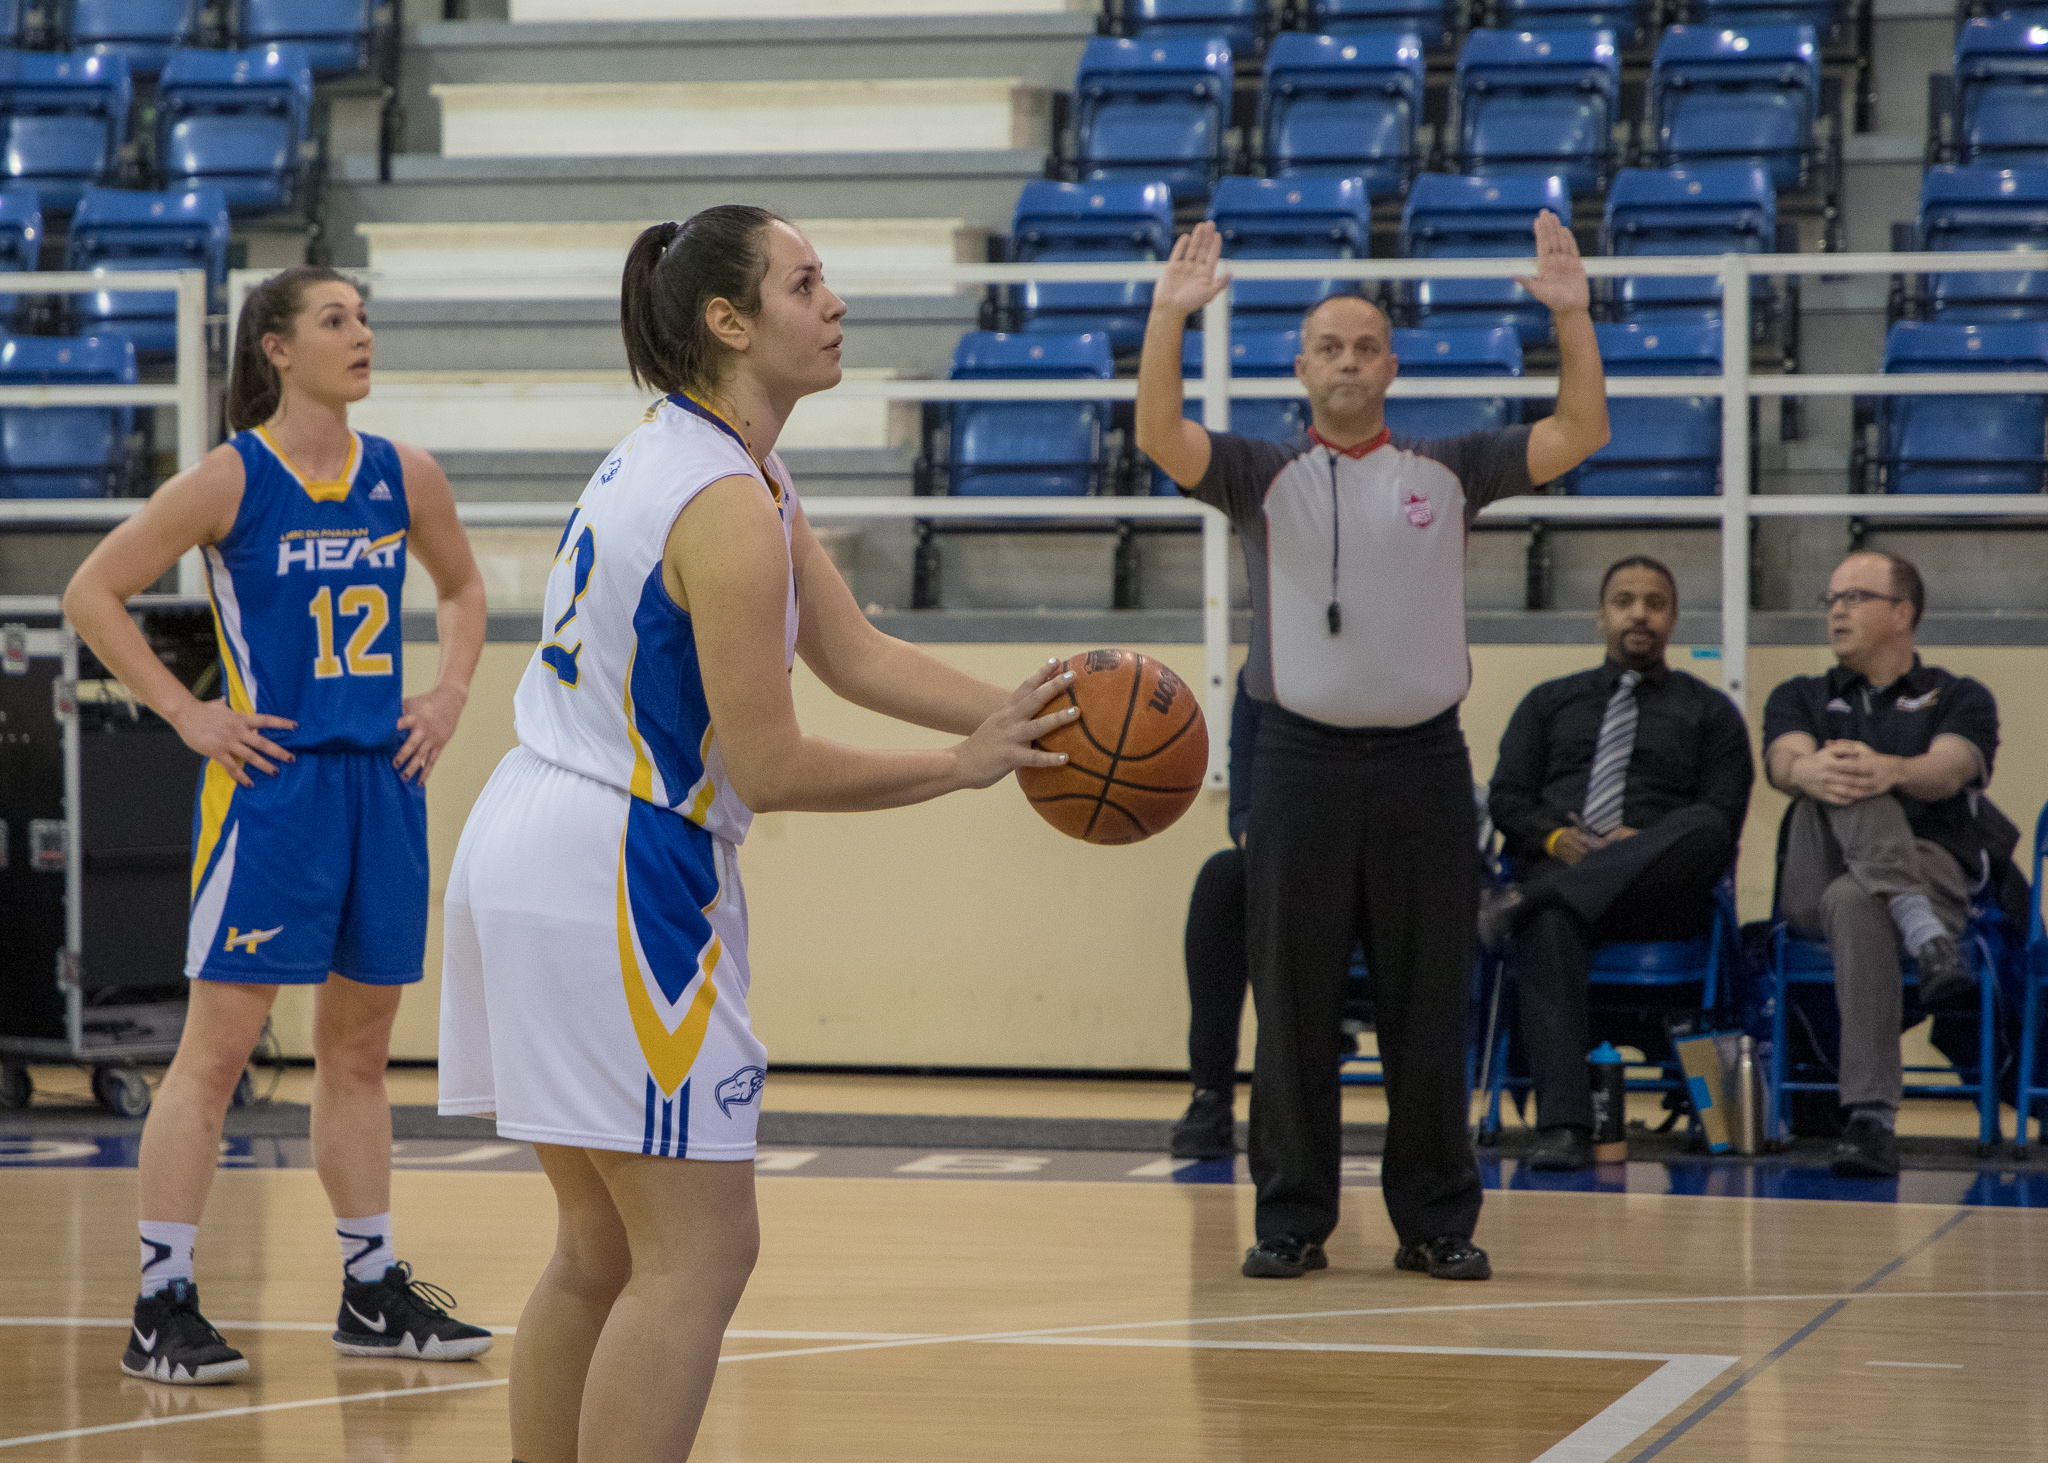 Dina Strujic sets up for a free throw.